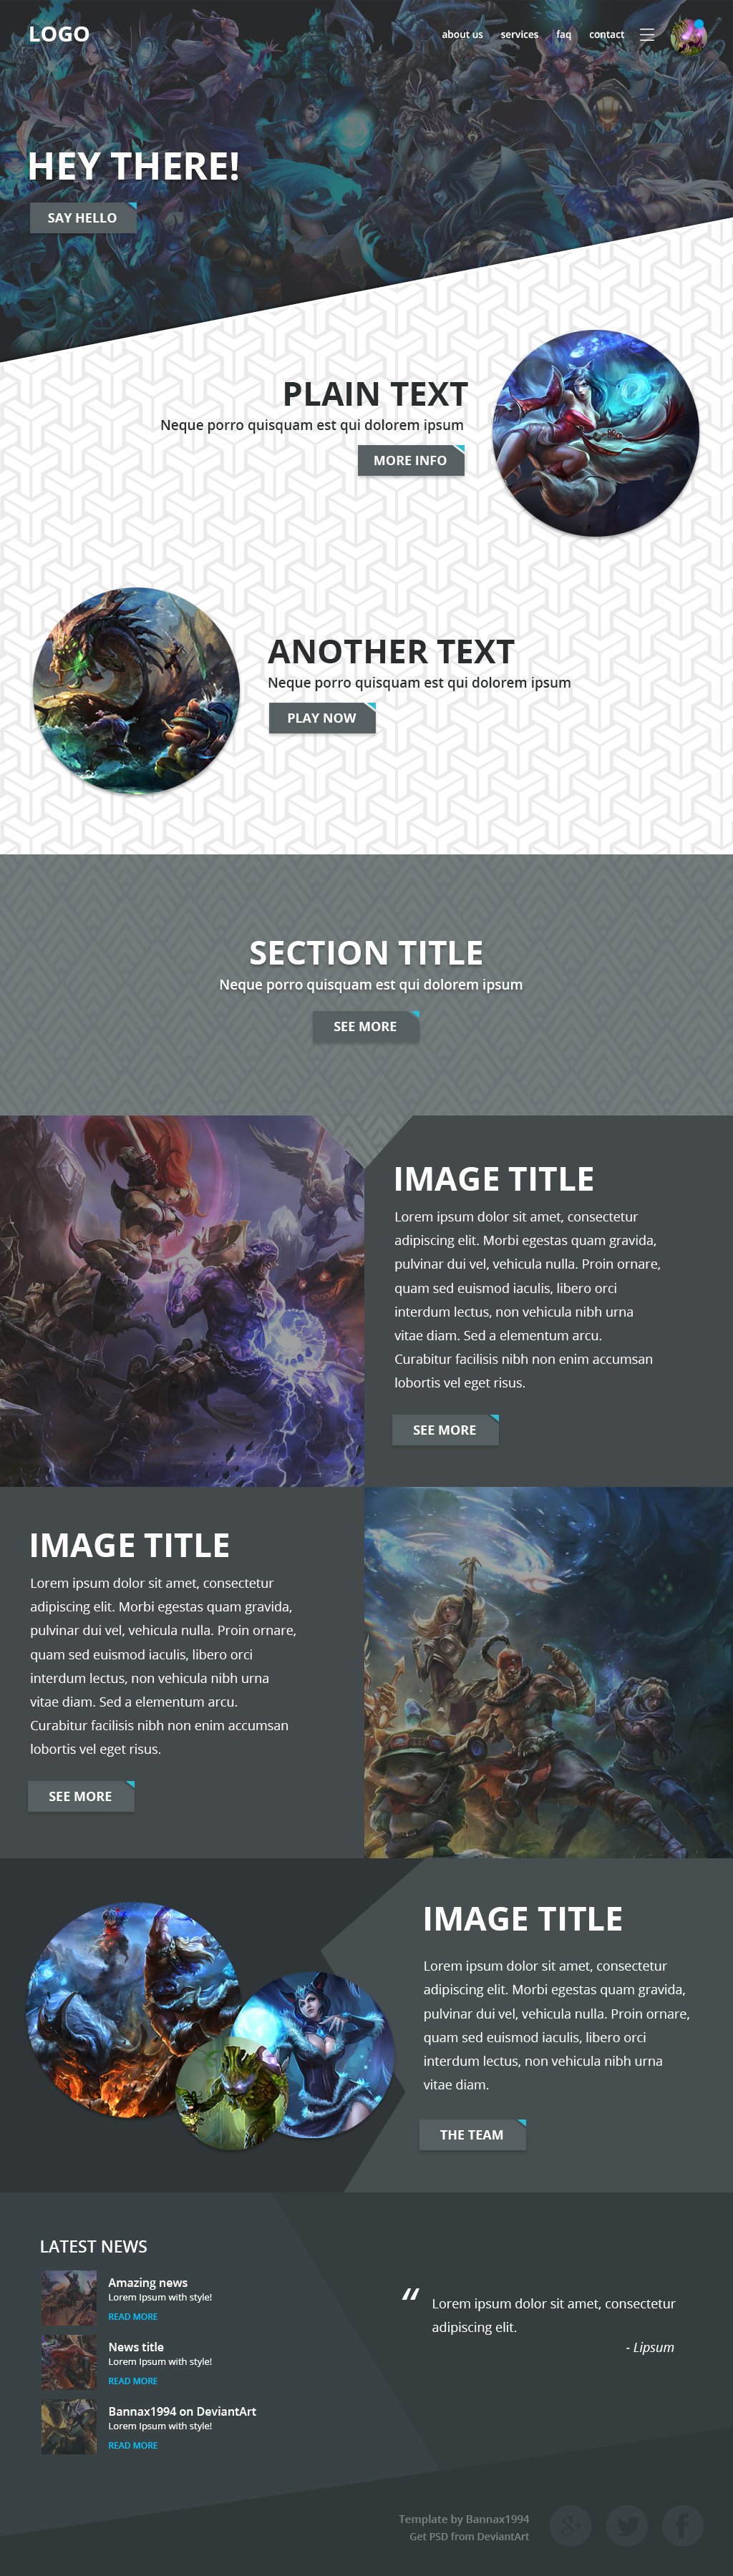 Fine Html Web Template Contemporary - Professional Resume Example ...